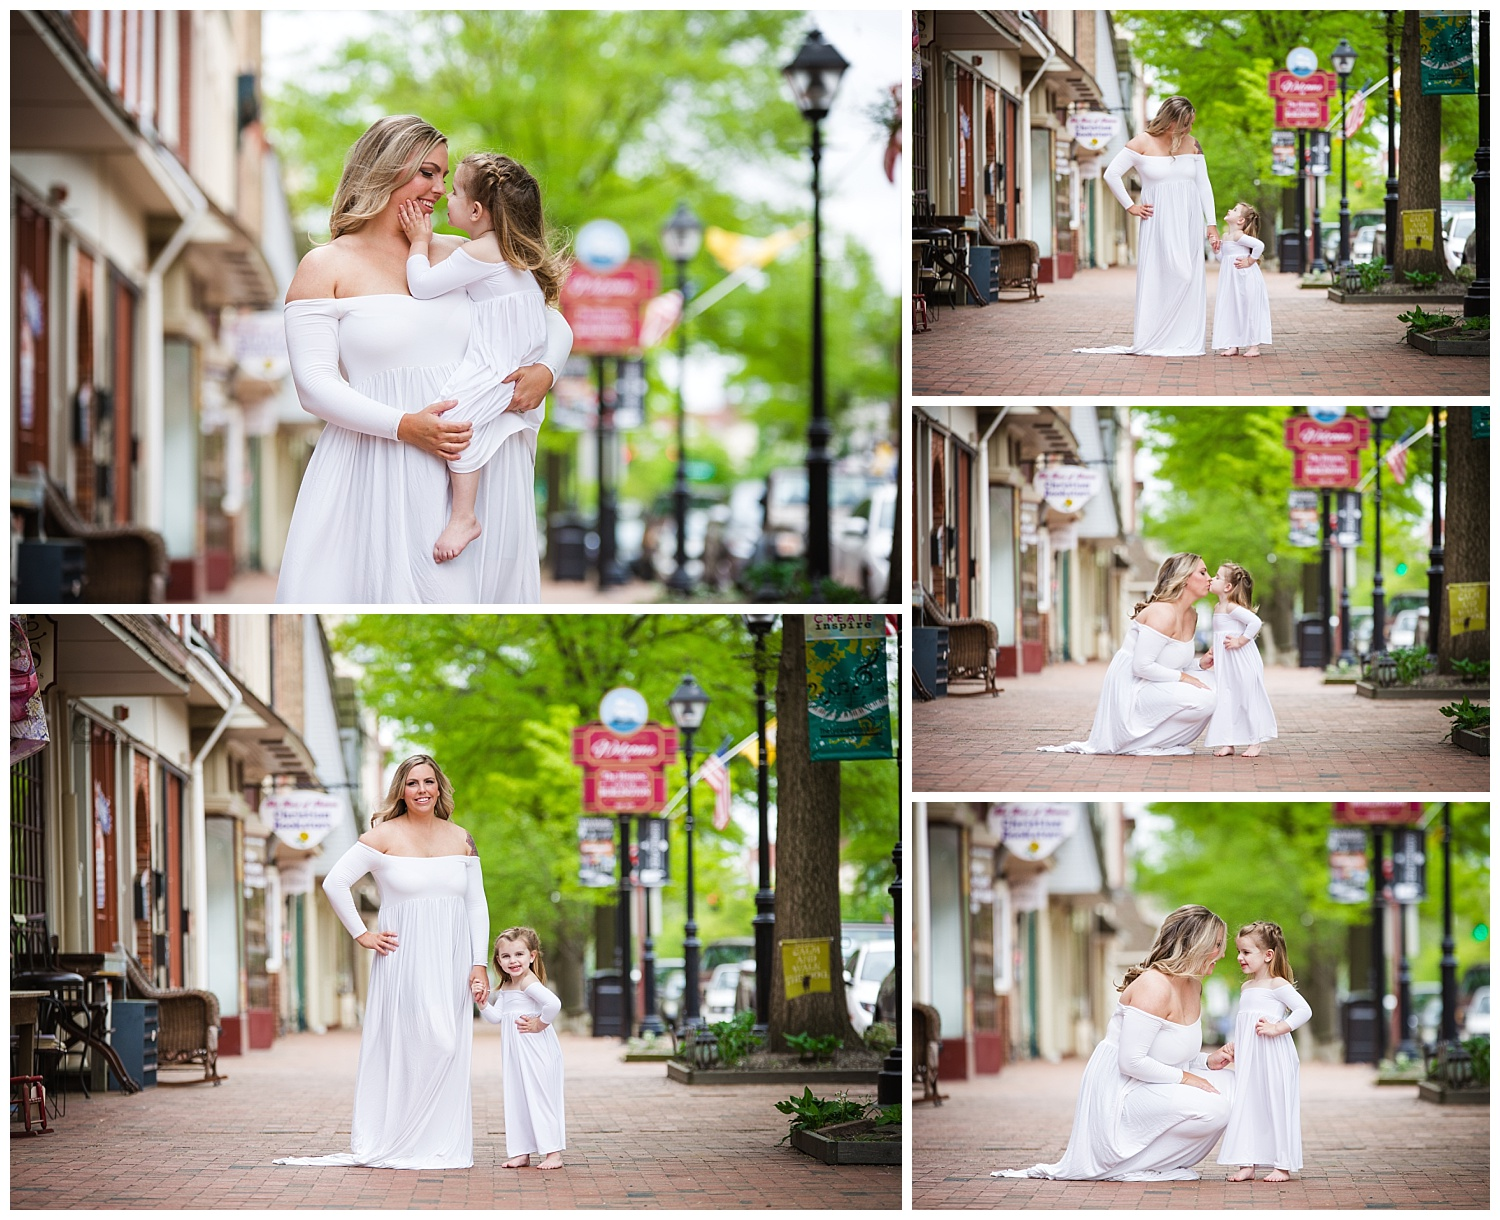 burlington new jersey photo shoot with mom and daughter kissing and hugging